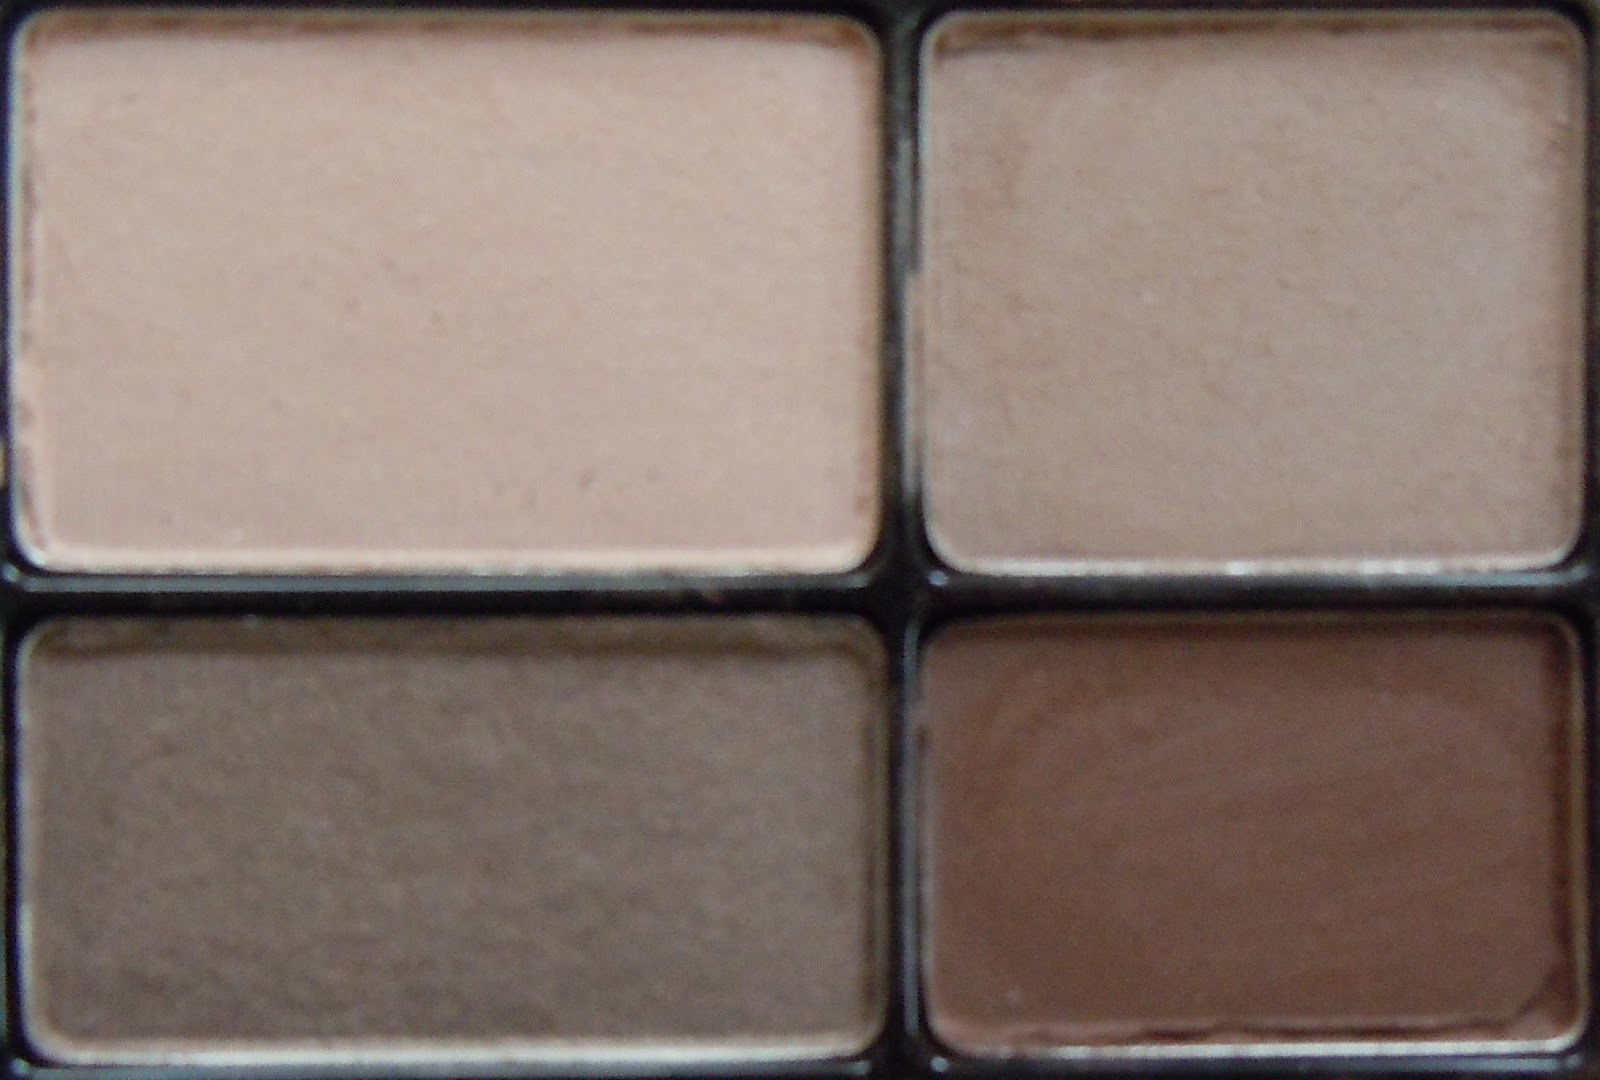 Lolas secret beauty blog revlon colorstay 16 hour eye shadow all four colors in this quad are buttery soft and apply with great ease i tried them with and without a primer and both ways the colors did last without ccuart Images